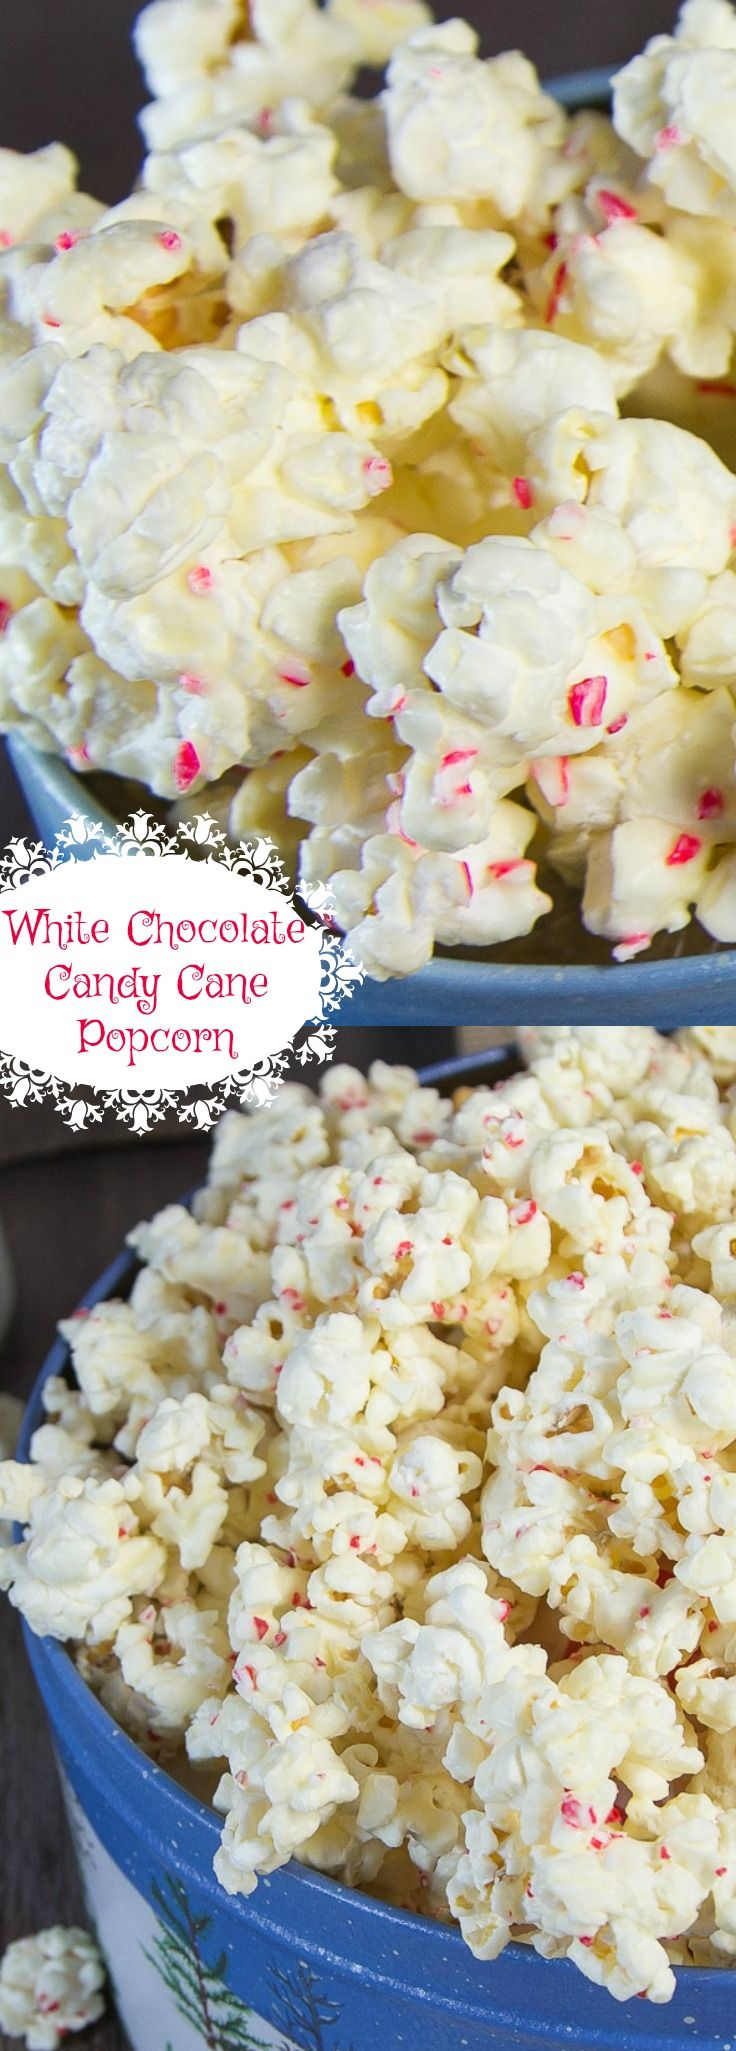 White Chocolate Candy Cane Popcorn is amazing!! Makes a great homemade gift.